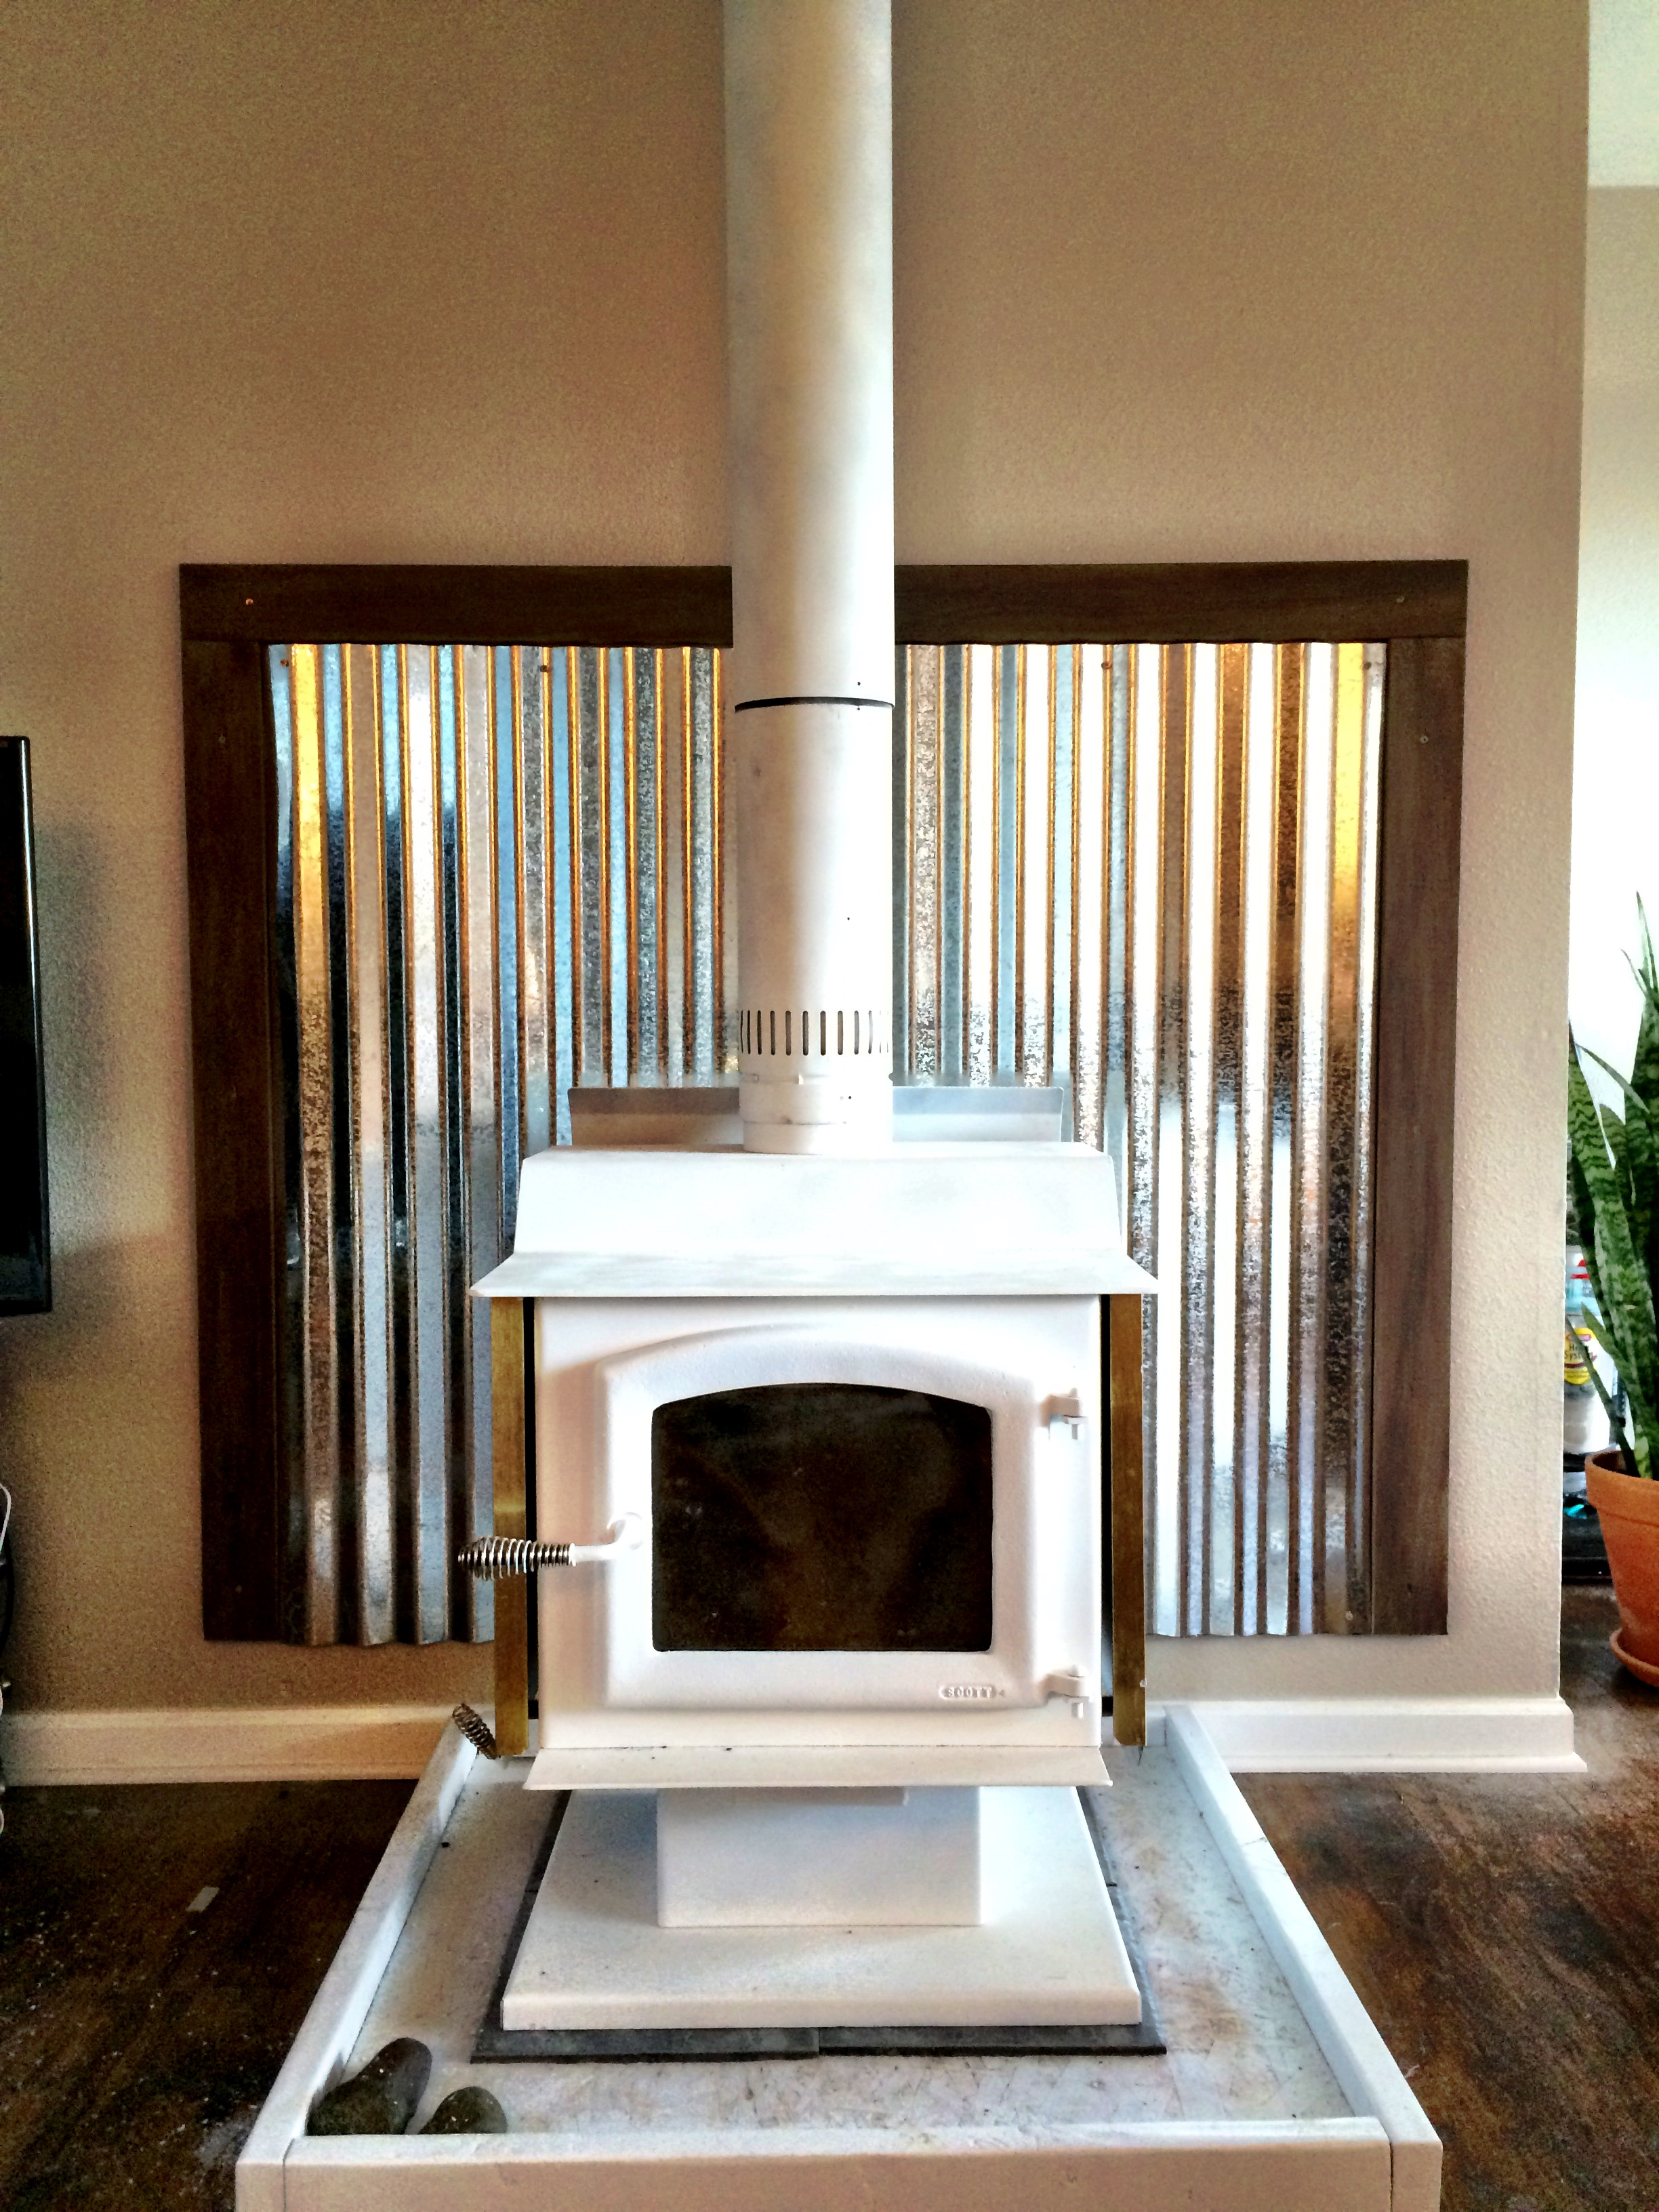 Tin Fireplace Surround 1000+ Images About Fireplace On Pinterest | Stove, Wood